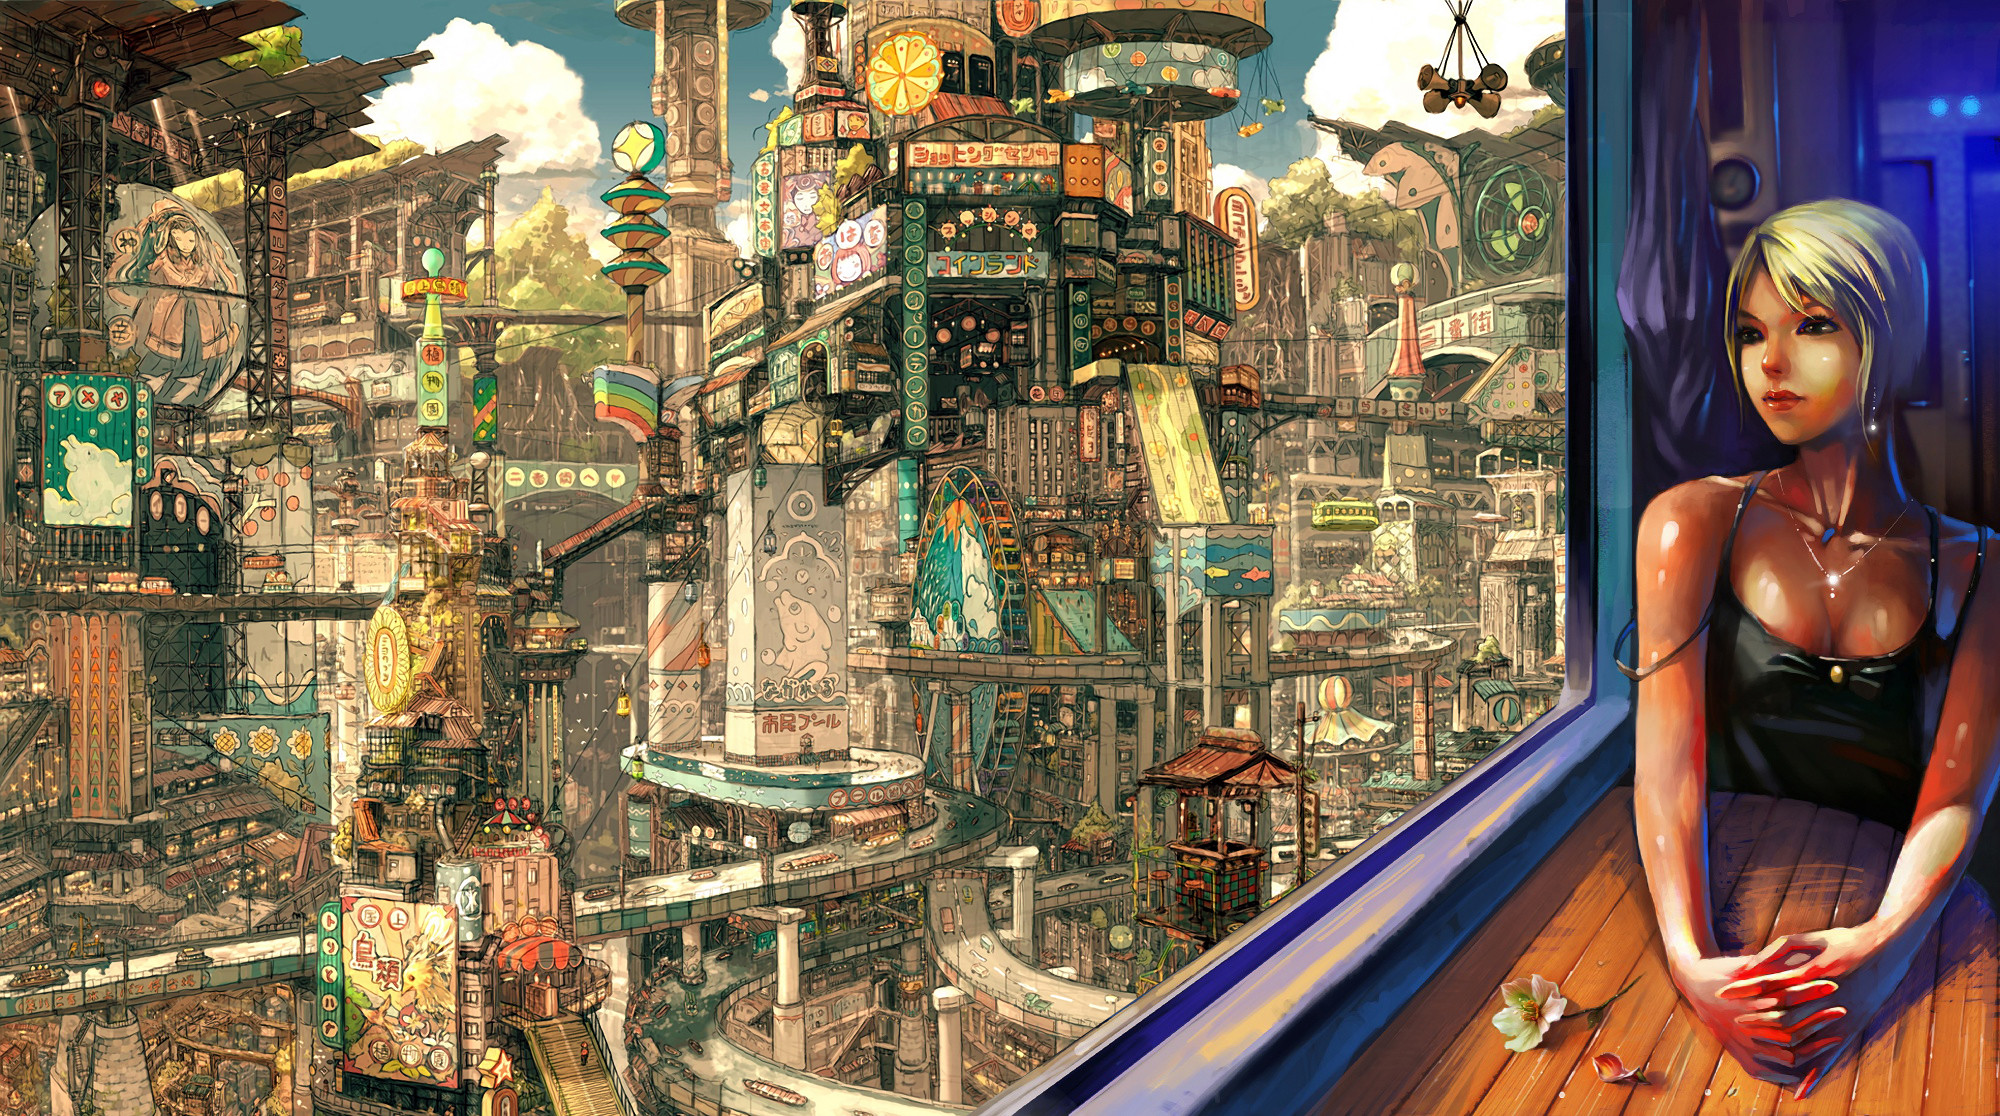 Res: 2000x1116, HD Wallpaper | Background Image ID:115348.  Sci Fi Steampunk